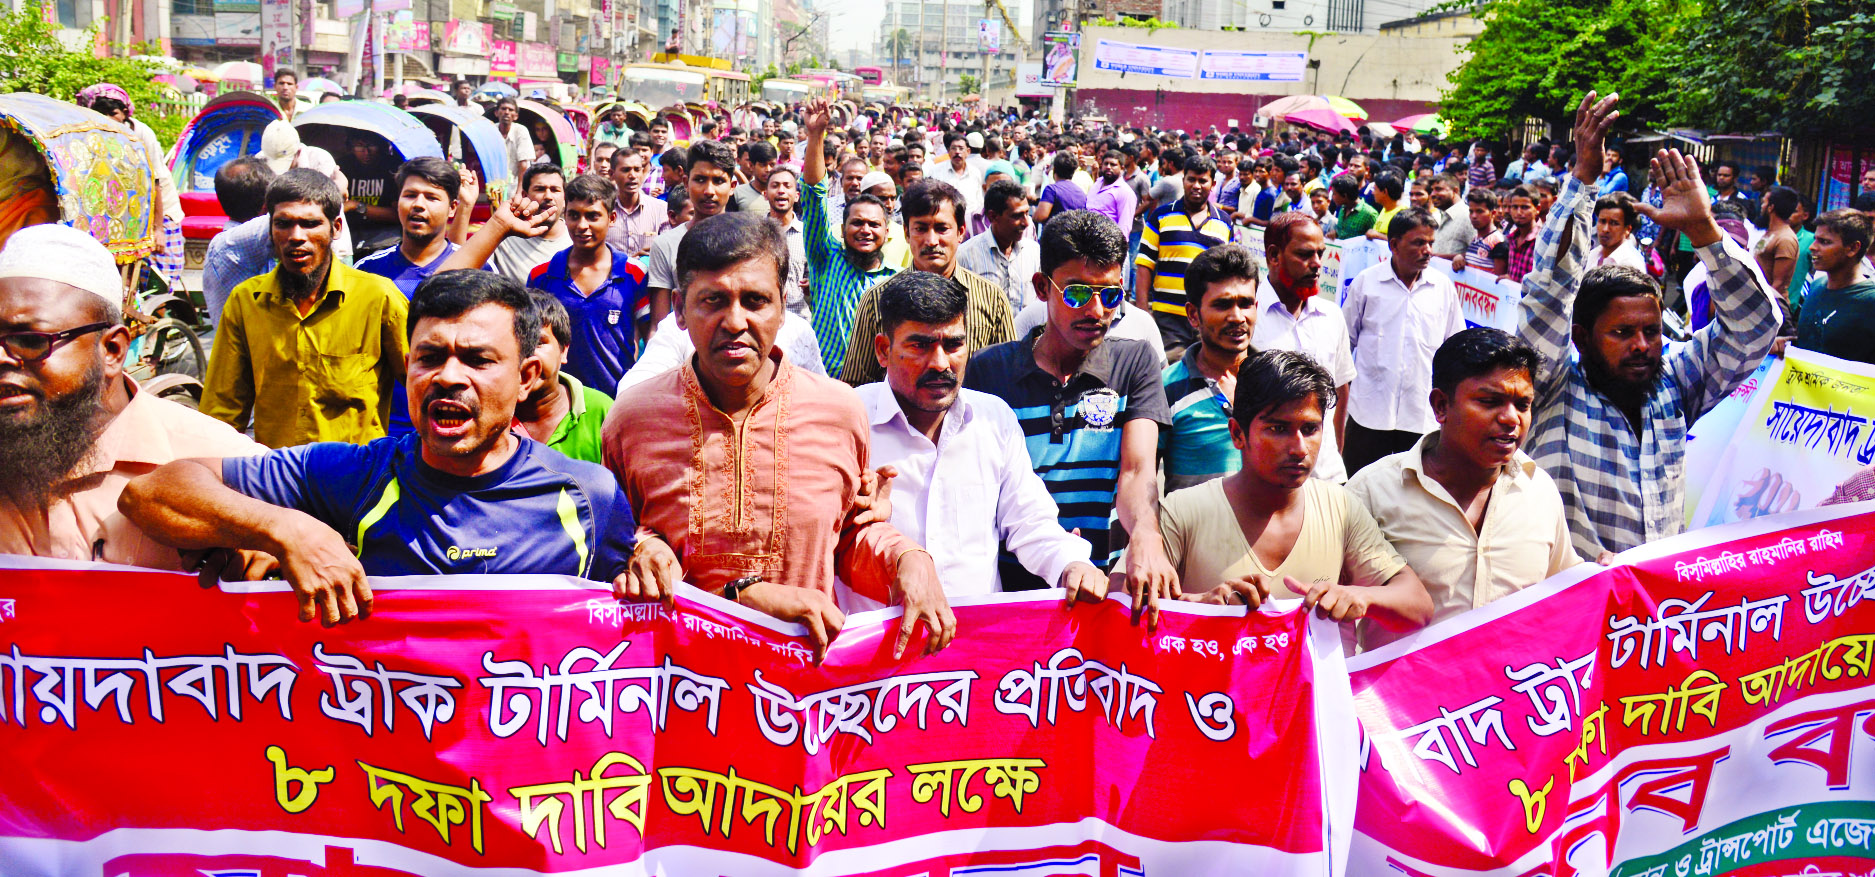 Bangladesh Truck Terminal Covered Van Transport Agency Malik Samity on Monday staged protest demonstration against recent eviction of Sayedabad truck terminal and for implementing their 8-point demands.